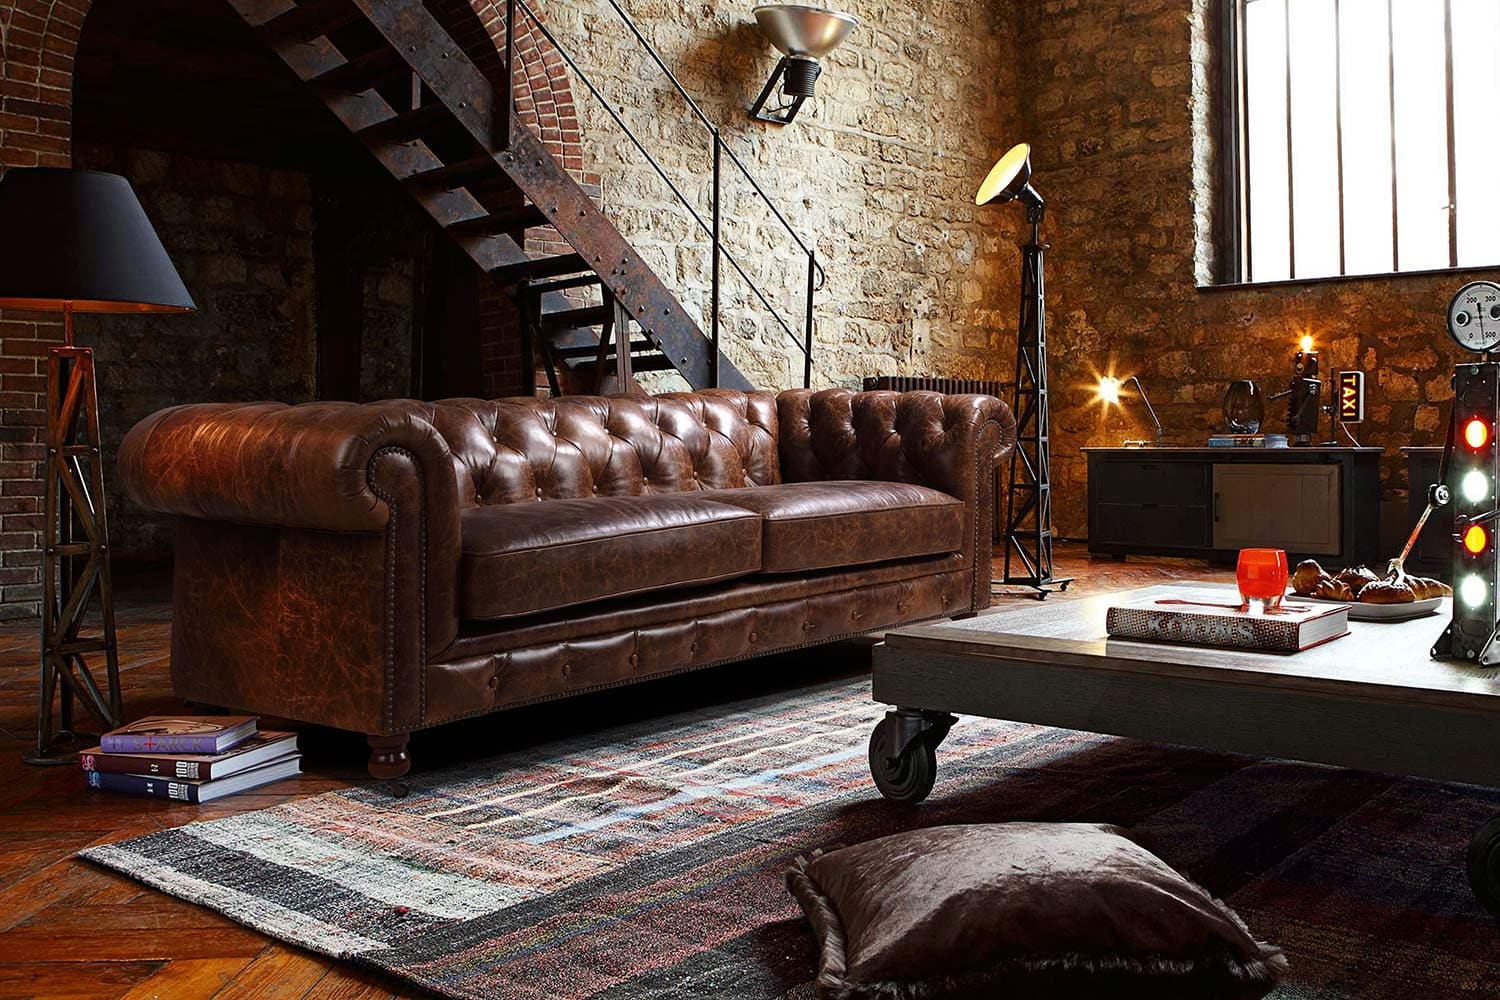 Un canap chesterfield pour un style british affirm for Couch quelle